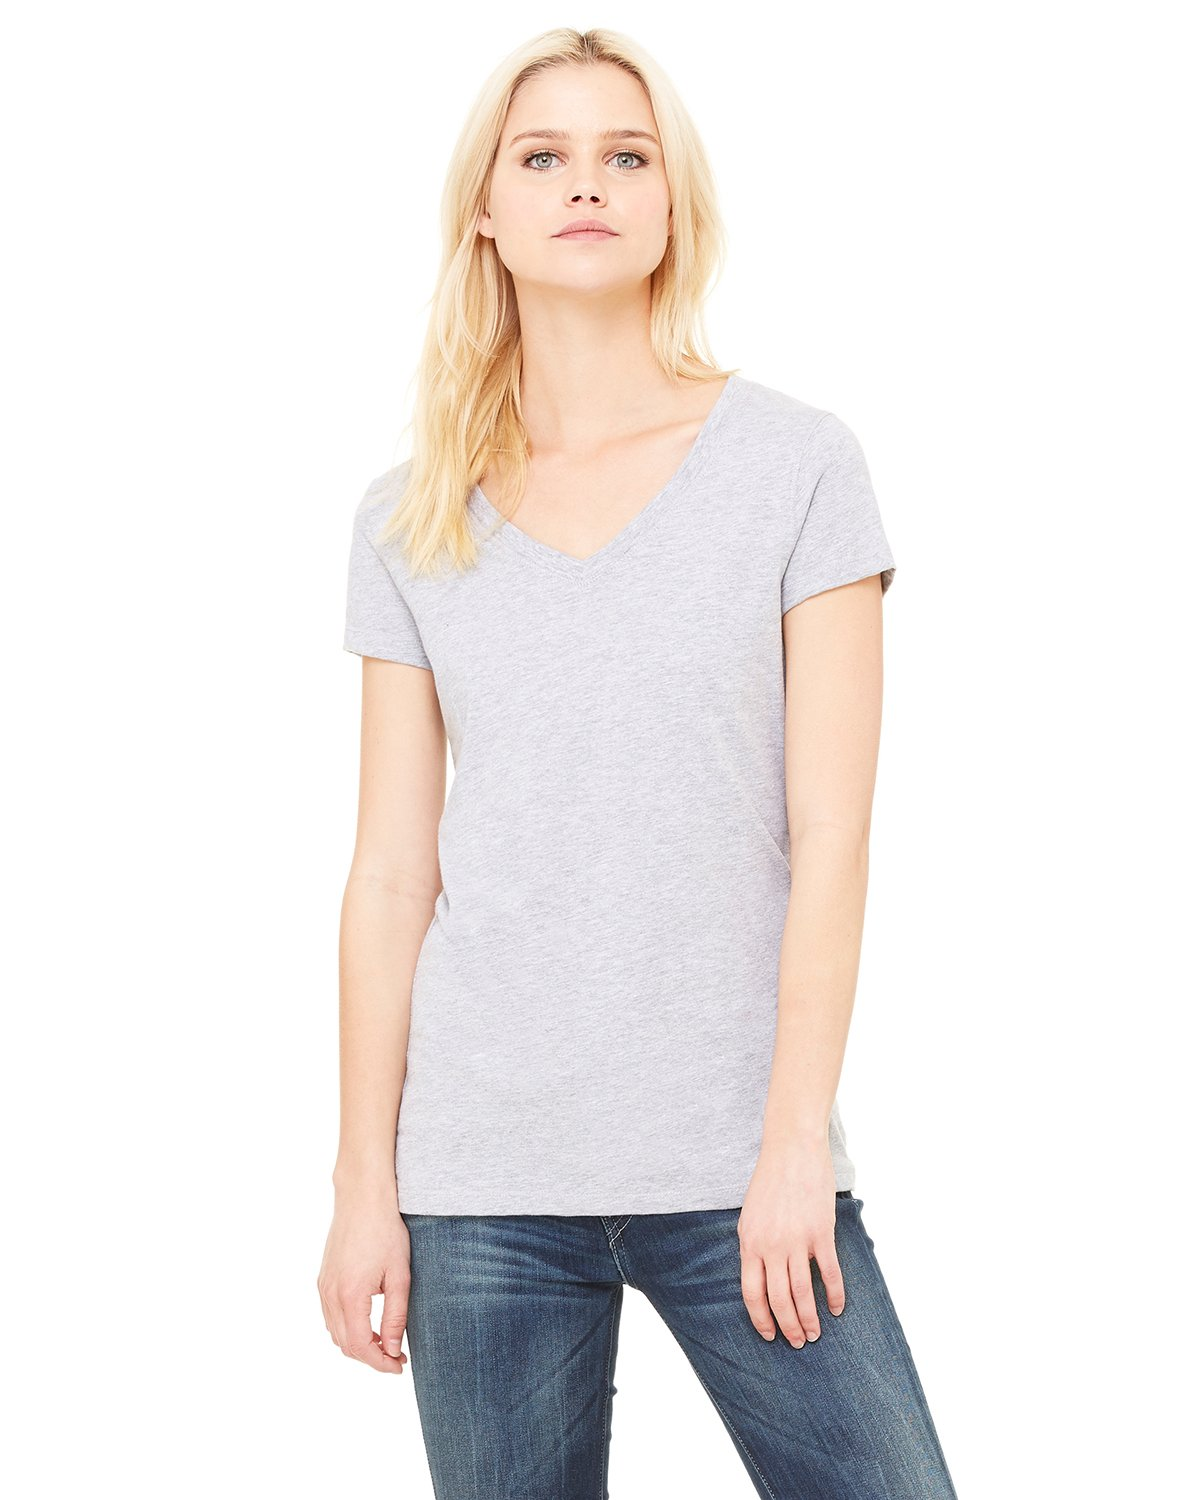 Bella + Canvas - B6005 - Ladies' Jersey Short-Sleeve V-Neck T-Shirt